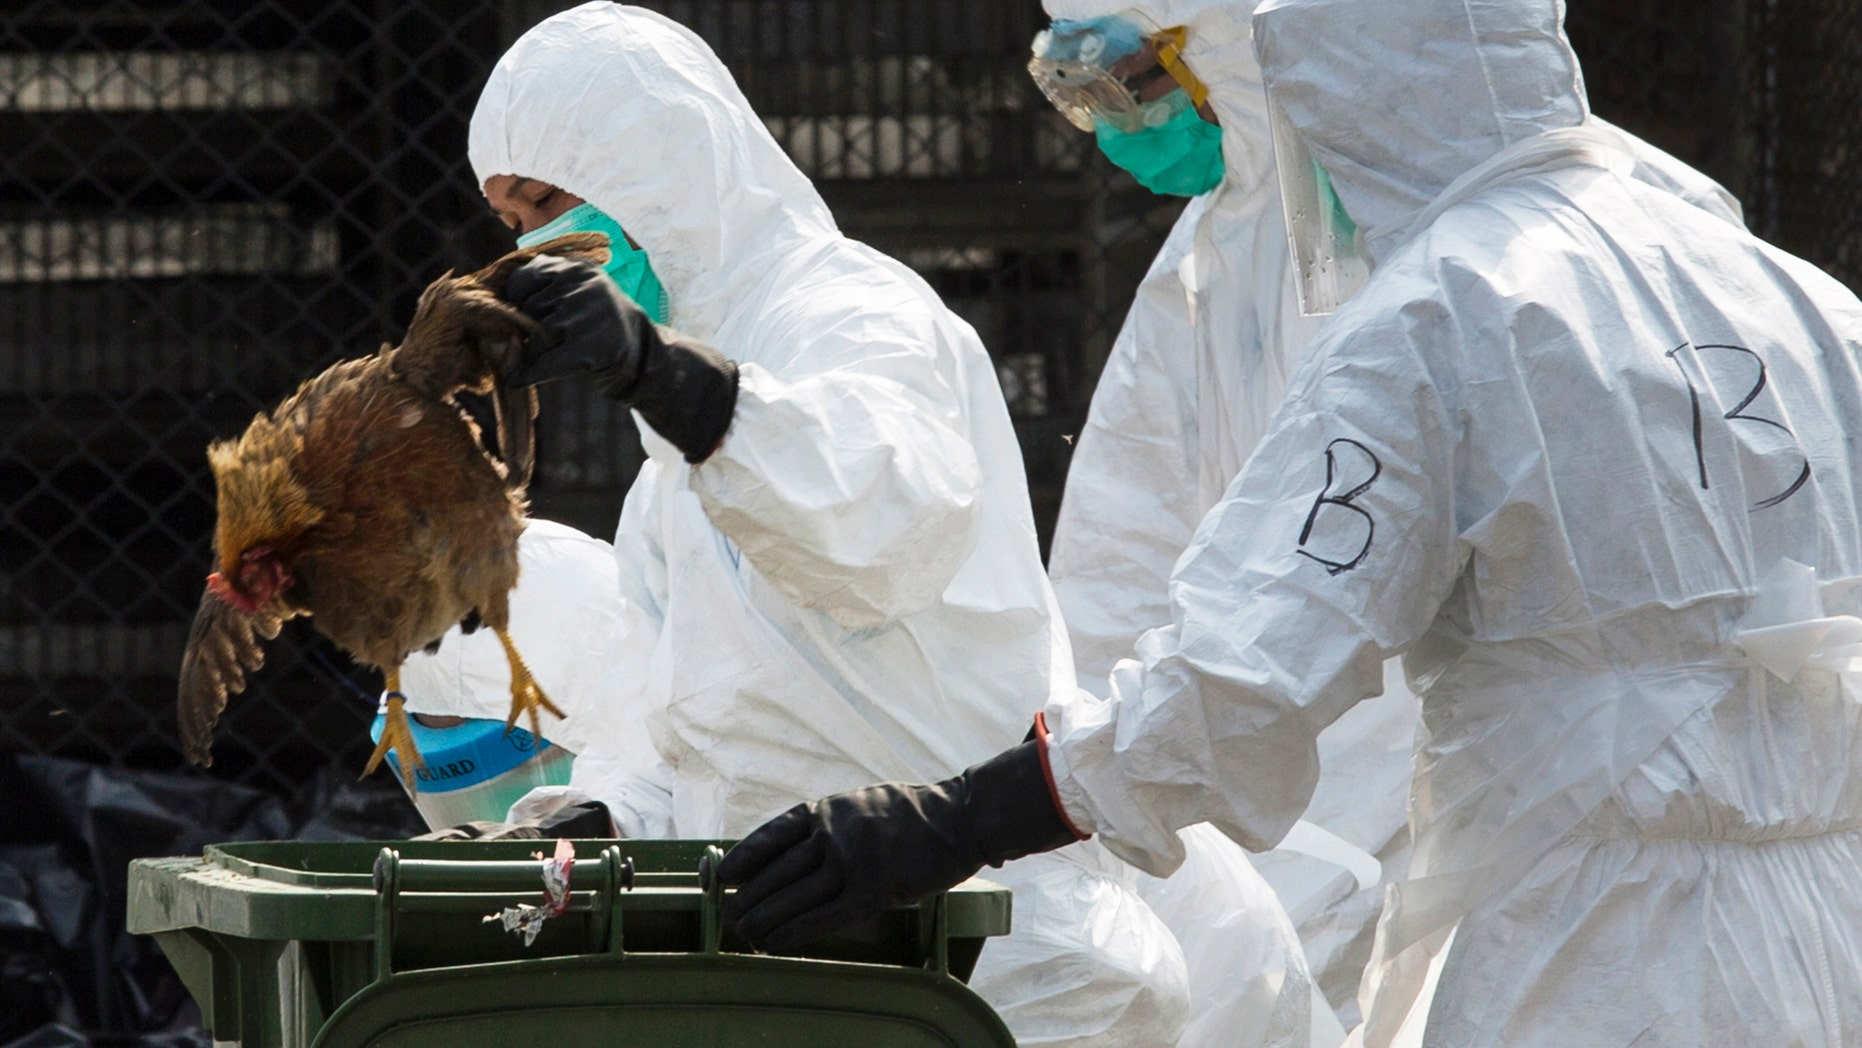 A health worker removes a dead chicken at a wholesale poultry market in Hong Kong January 28, 2014. (REUTERS/Tyrone Siu)